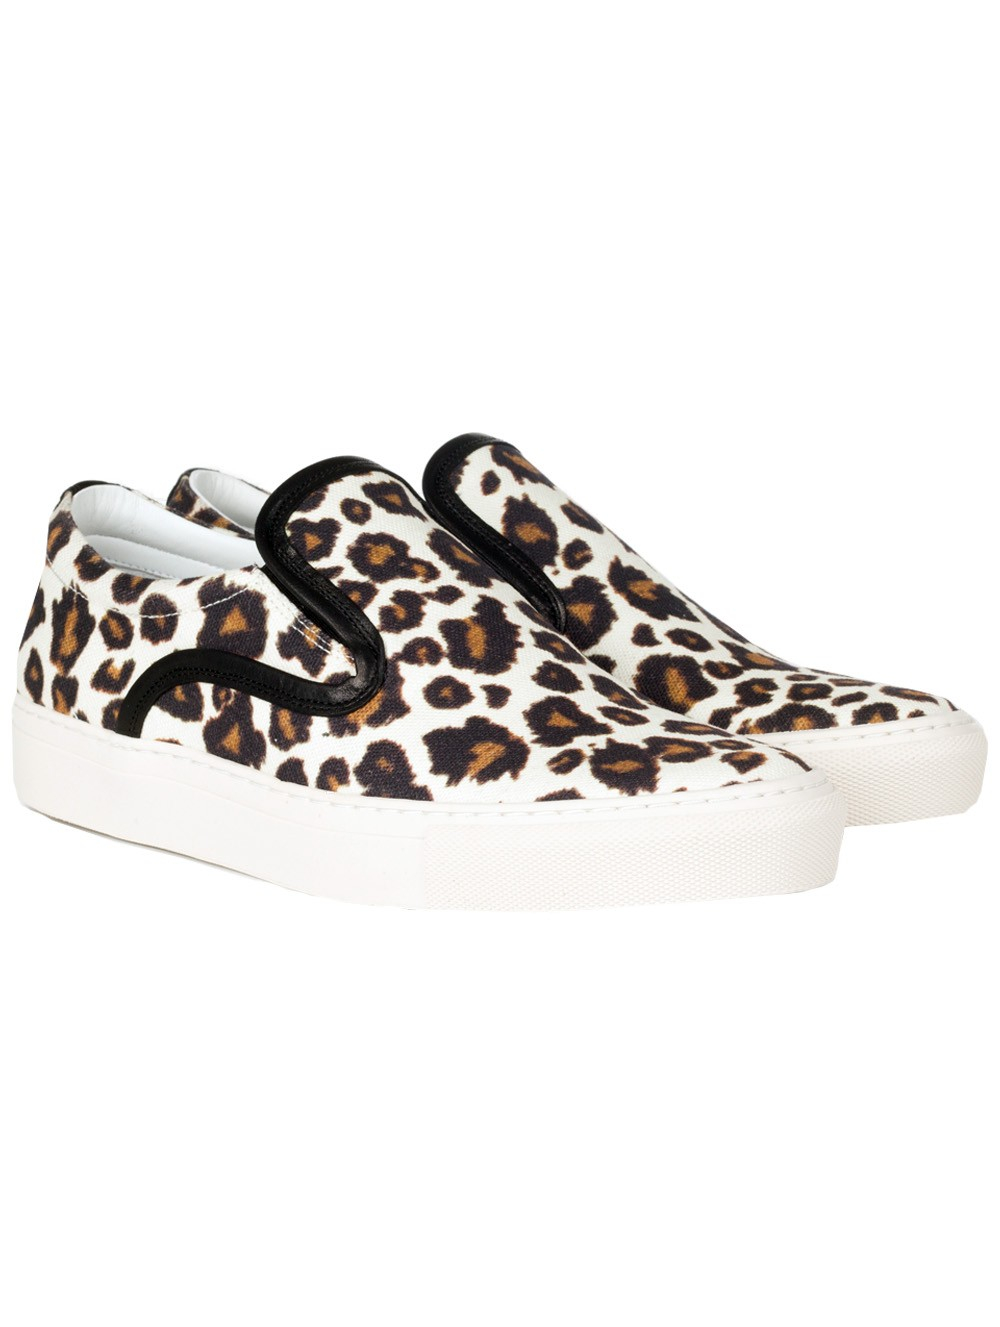 mother of pearl achilles leopard print canvas slip on sneakers in animal lyst. Black Bedroom Furniture Sets. Home Design Ideas